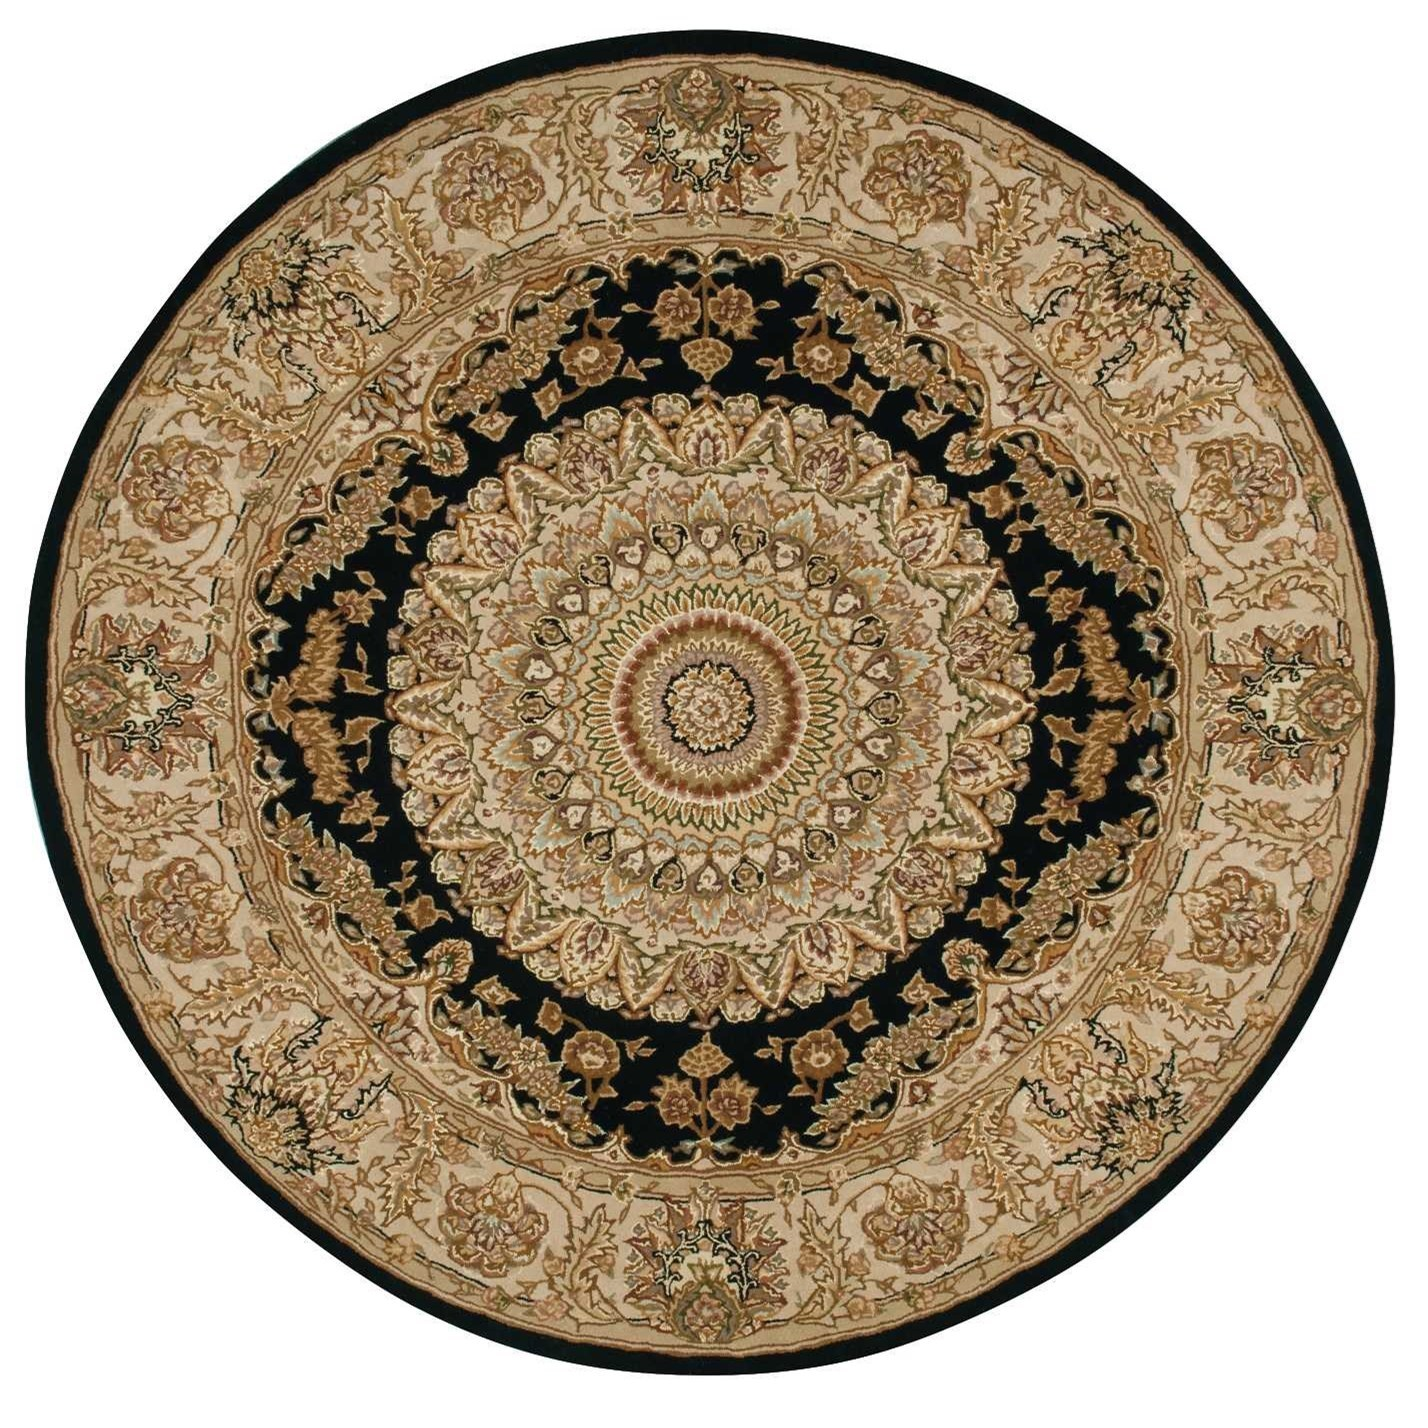 Nourison 2000 2000 2233 Black 4' Round  Area Rug by Nourison at Home Collections Furniture